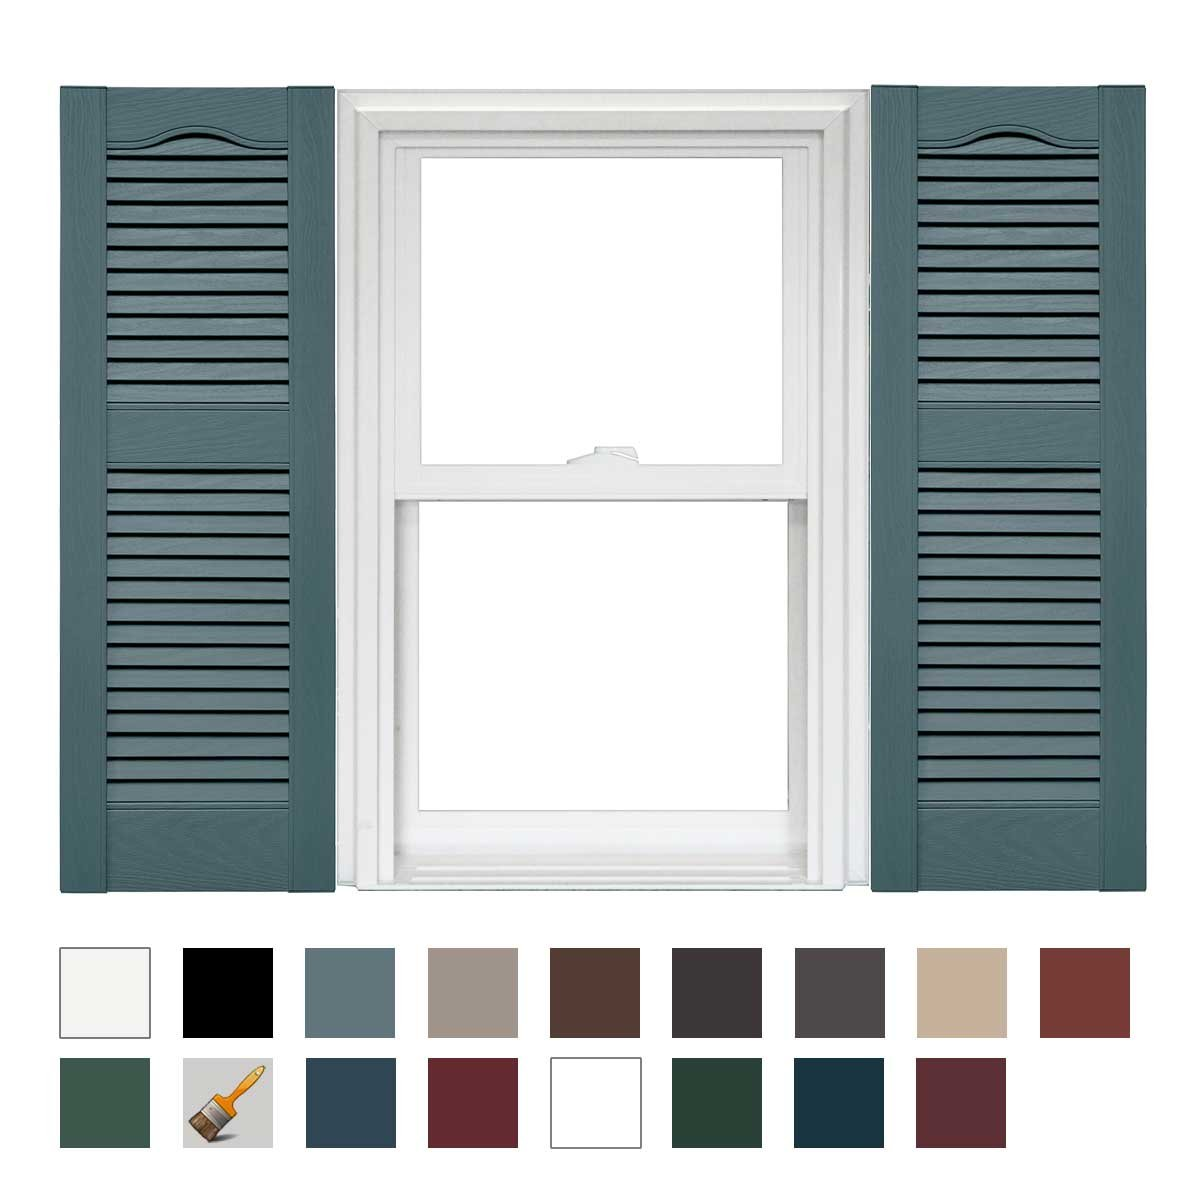 Mid America Cathedral Open Louver Vinyl Standard Shutter 1 Pair 14.5 x 60 009 Federal Brown